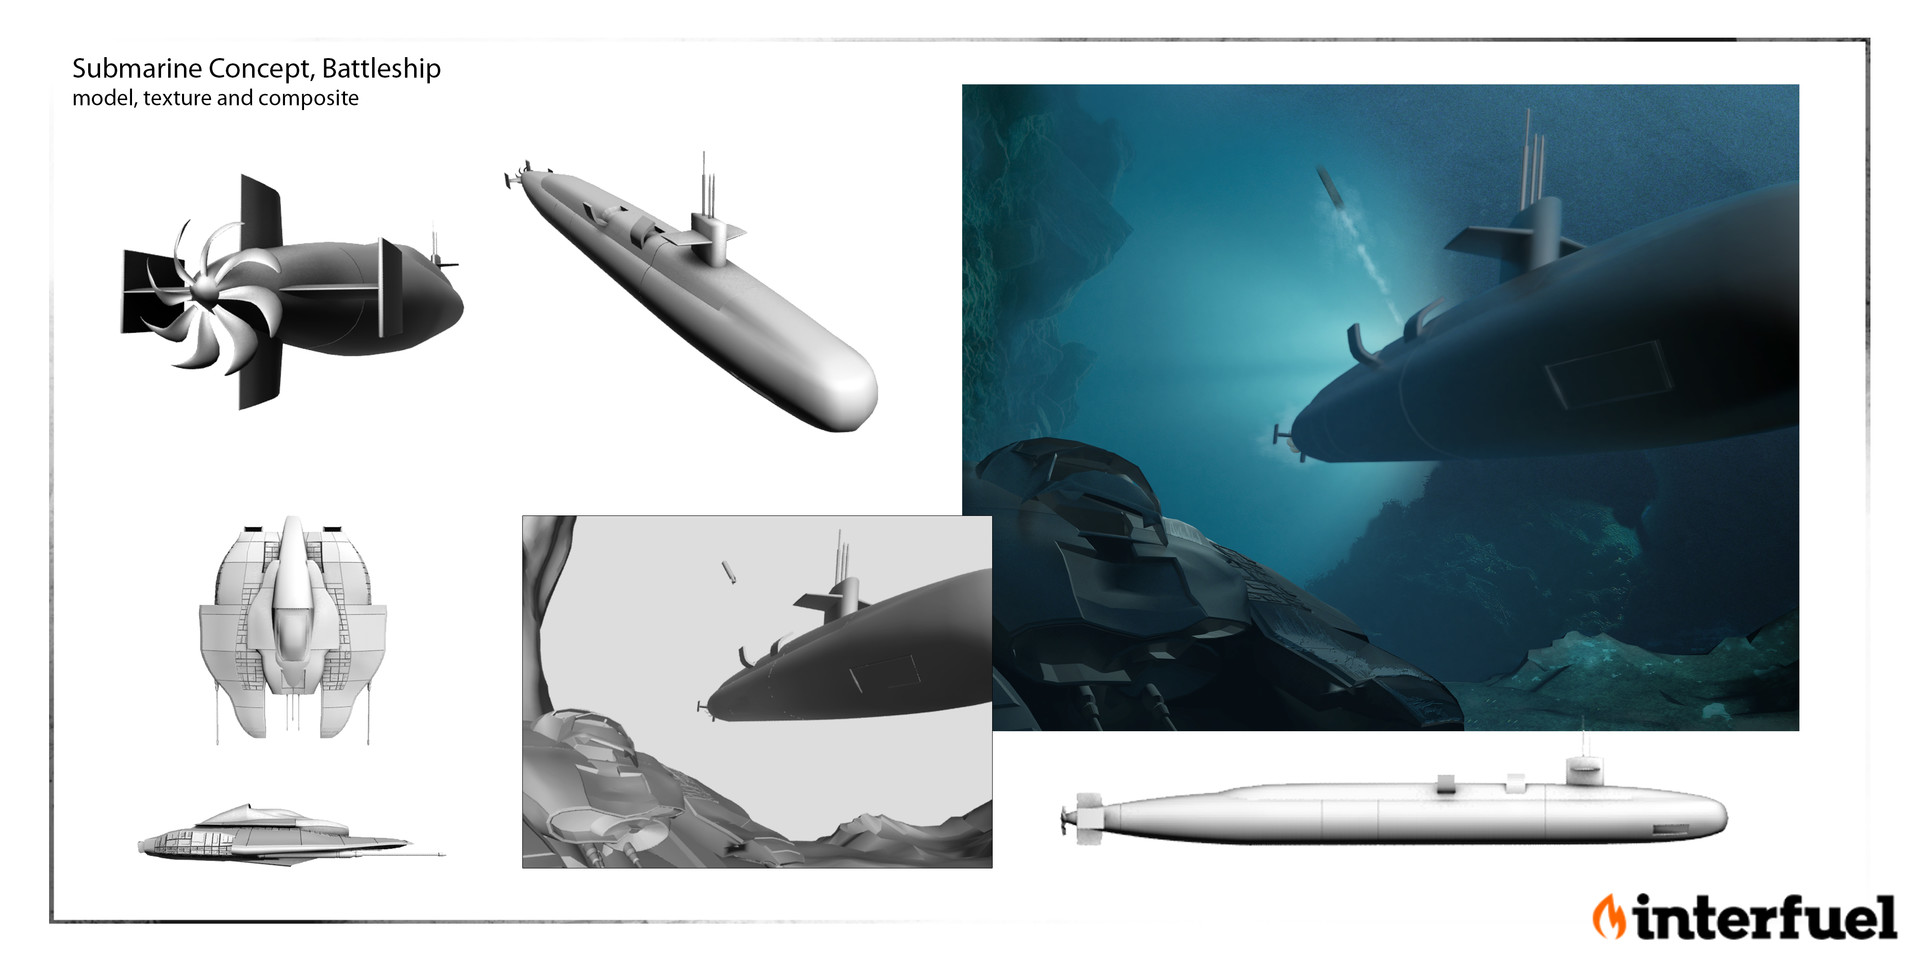 Submarine Attack Scene: Concept , design, model and composite